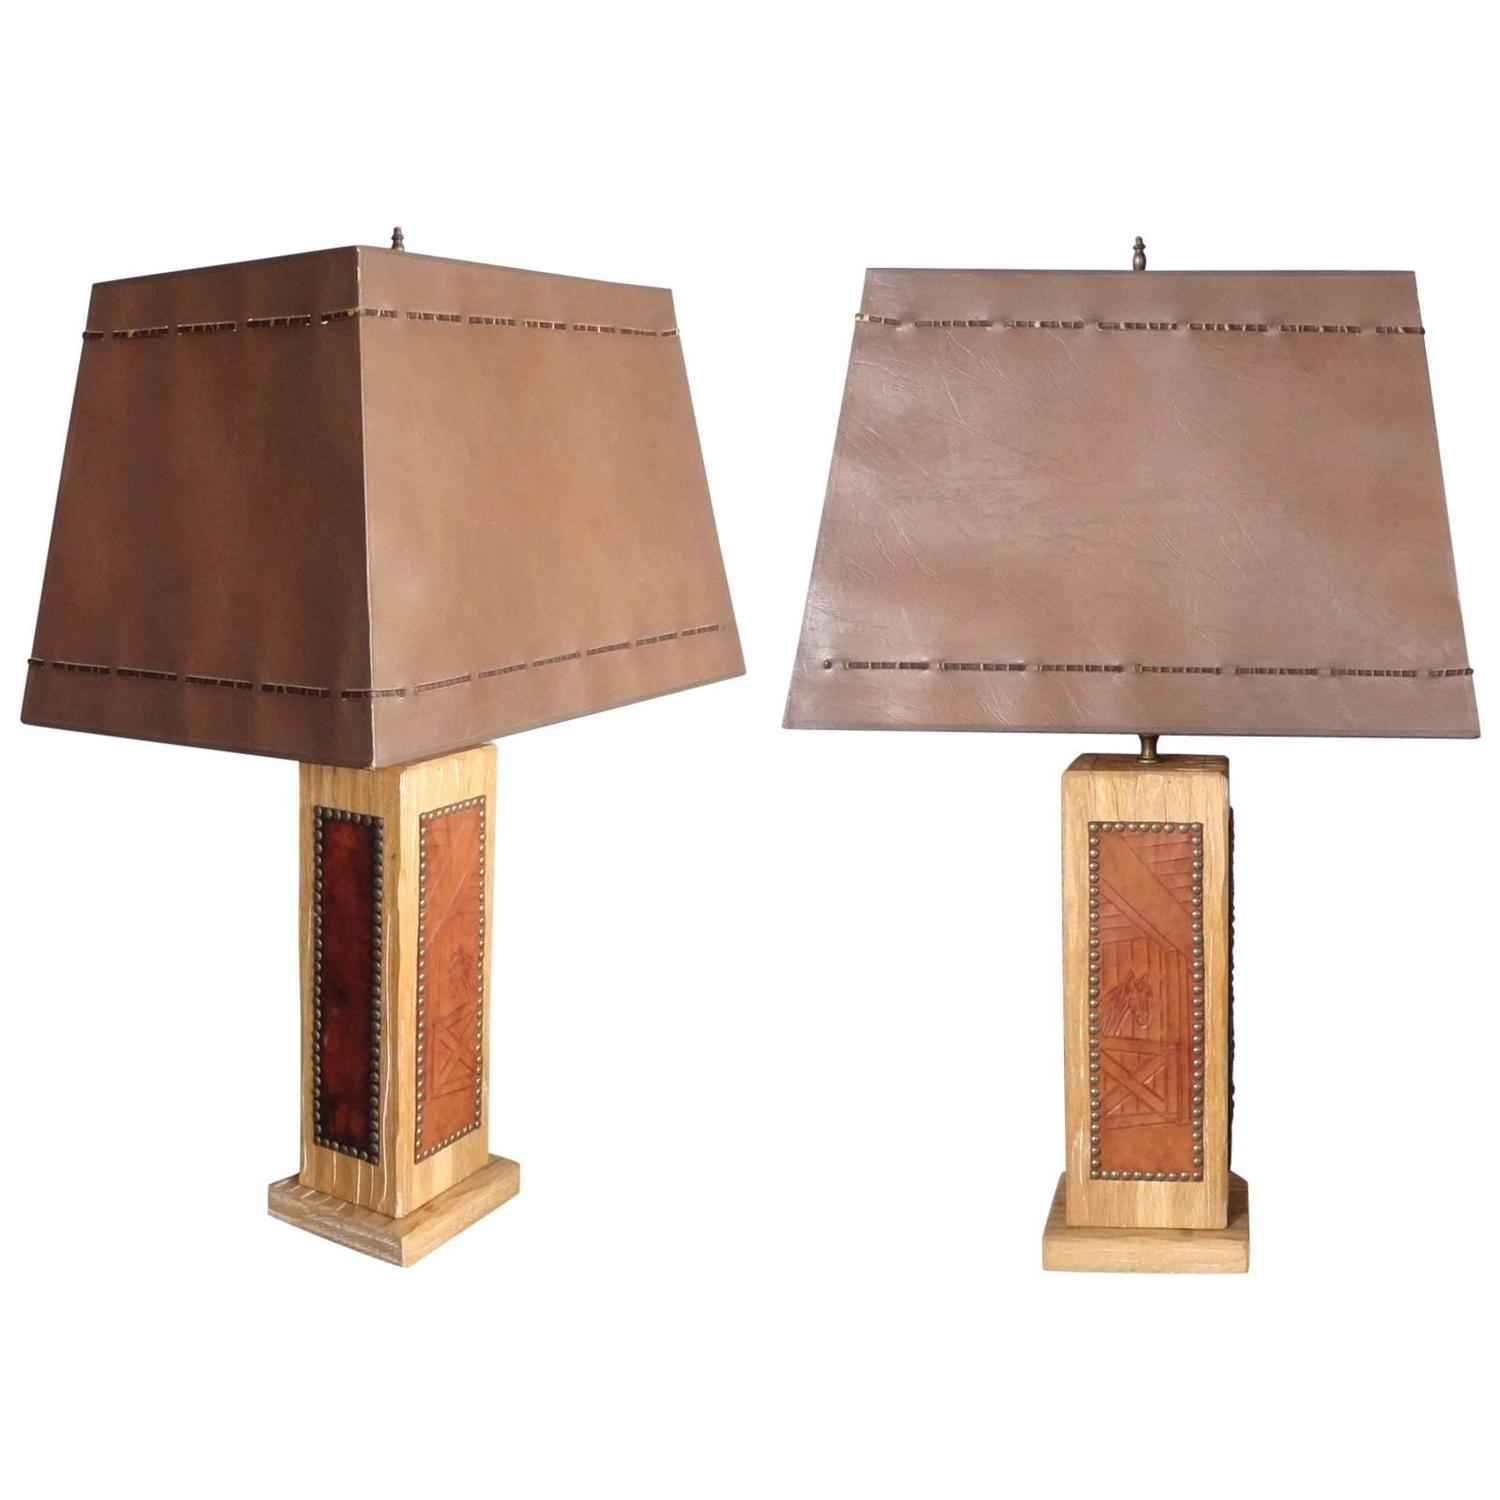 Pair of ranch oak western theme cottage lodge table lamps for sale pair of ranch oak western theme cottage lodge table lamps for sale at 1stdibs mozeypictures Images